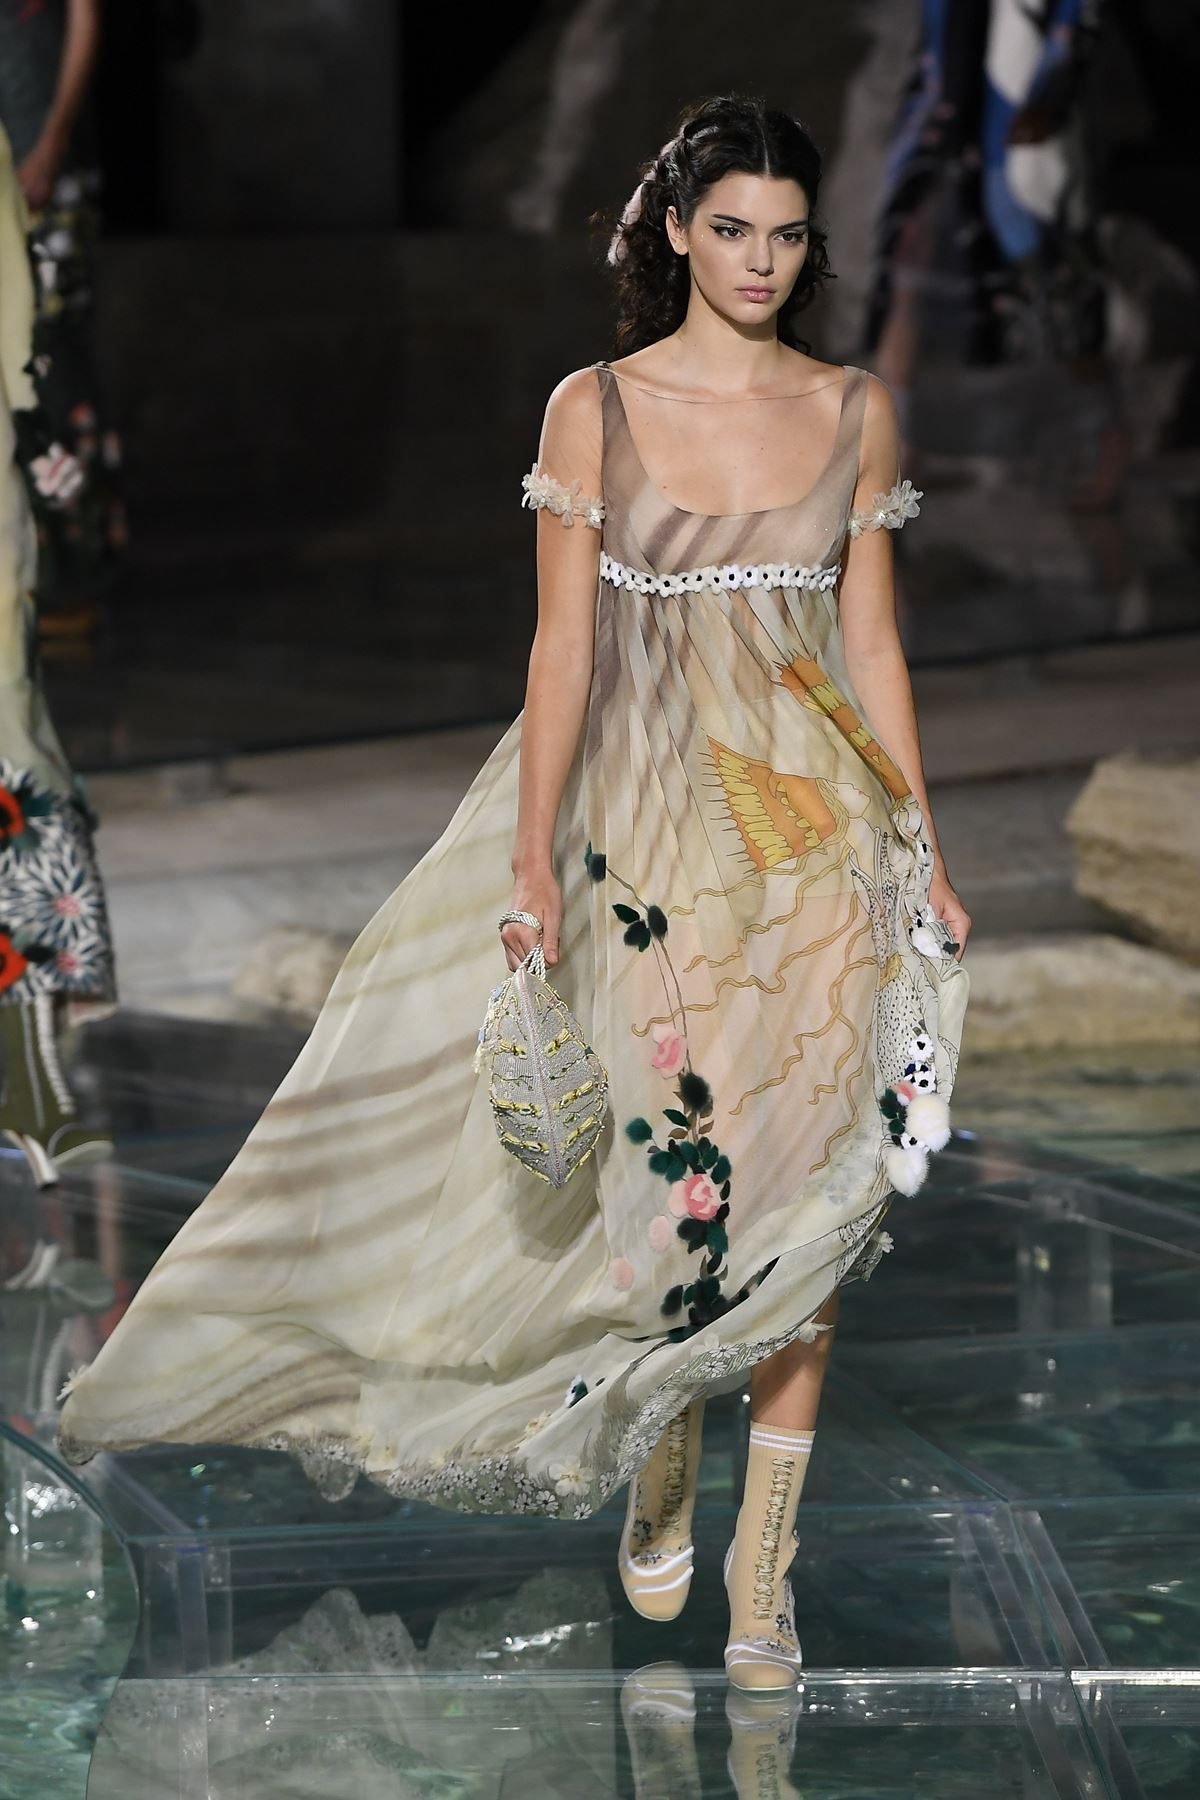 **2016** For Fendi's 90th anniversary event held in front of Rome's iconic Trevi fountain, Kendall Jenner legit stole the show in this ~glorious~ look that easily could be straight outta a fairytale.